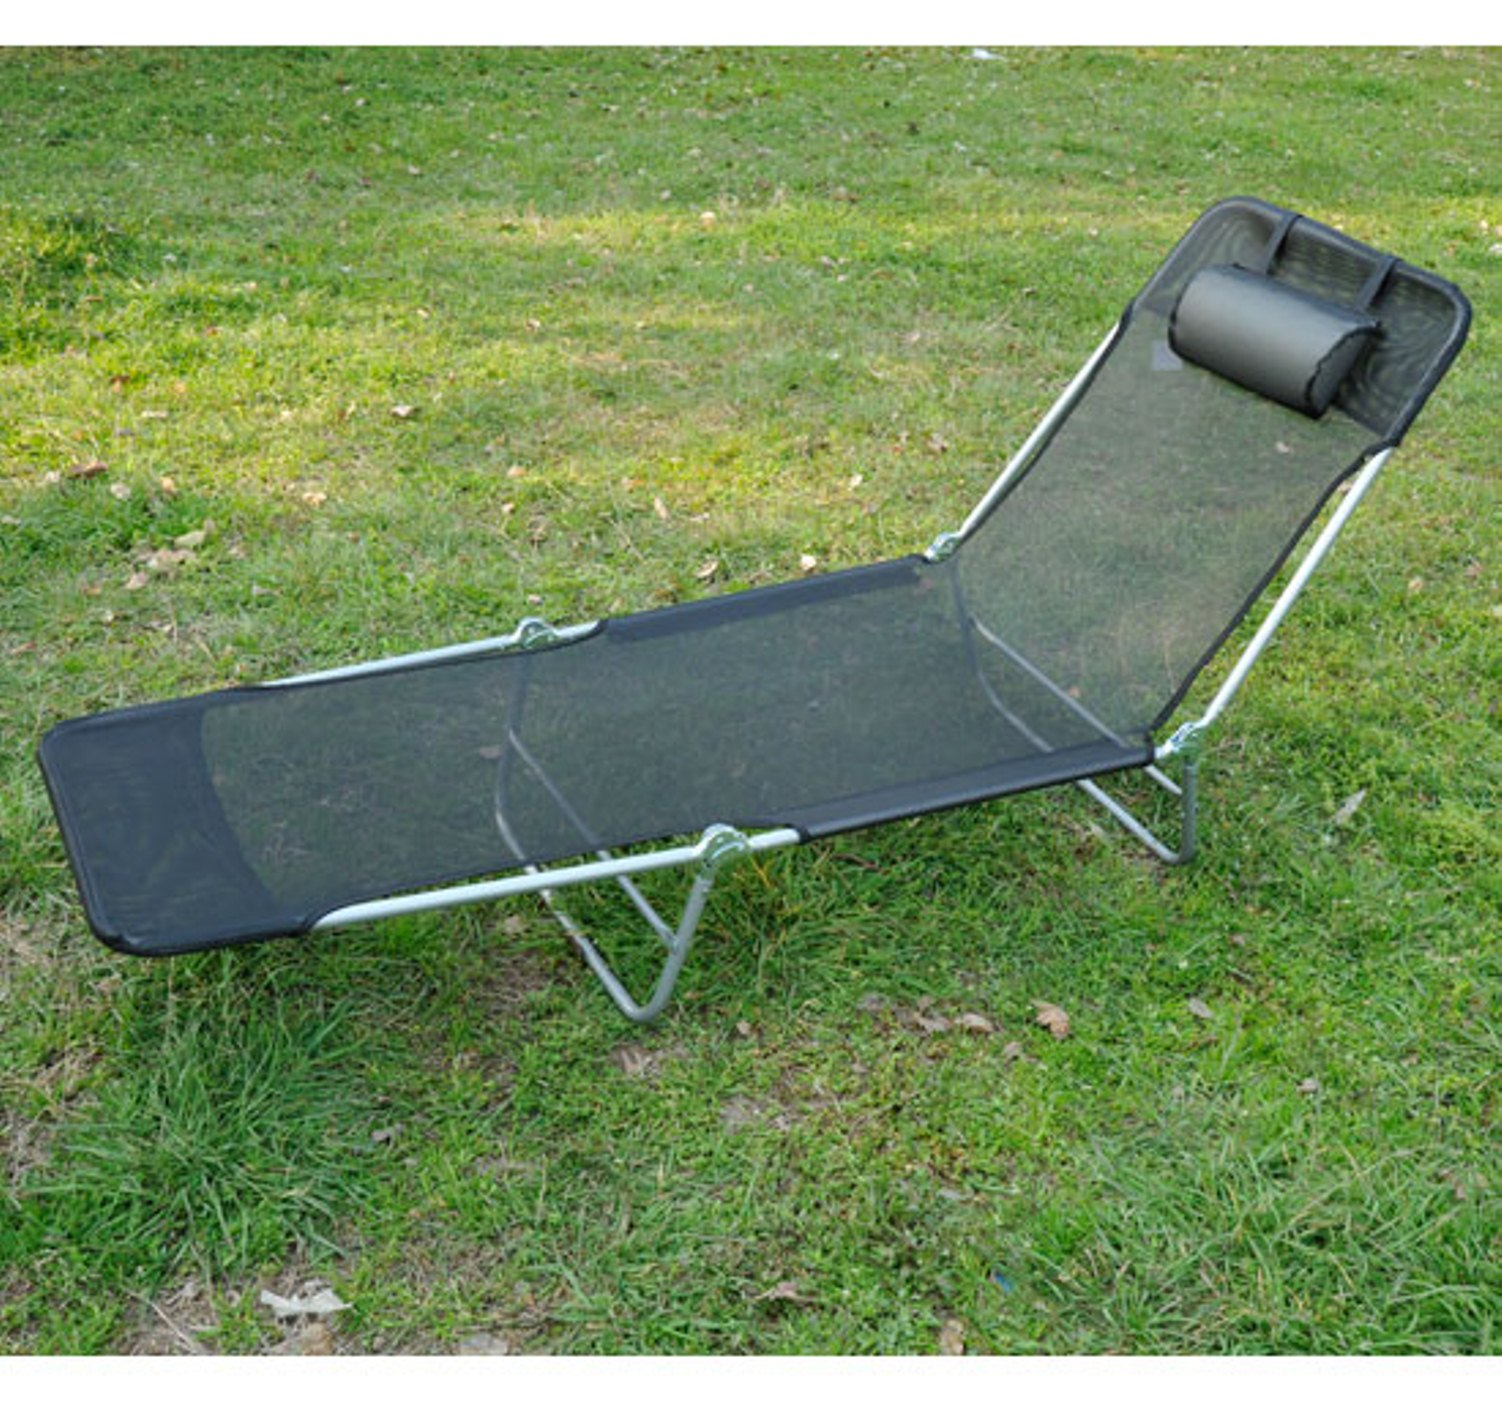 Outsunny Adjustable Reclining Beach Sun Lounge Chair - Black & Outsunny Adjustable Reclining Beach Sun Lounge Chair - Black ... islam-shia.org